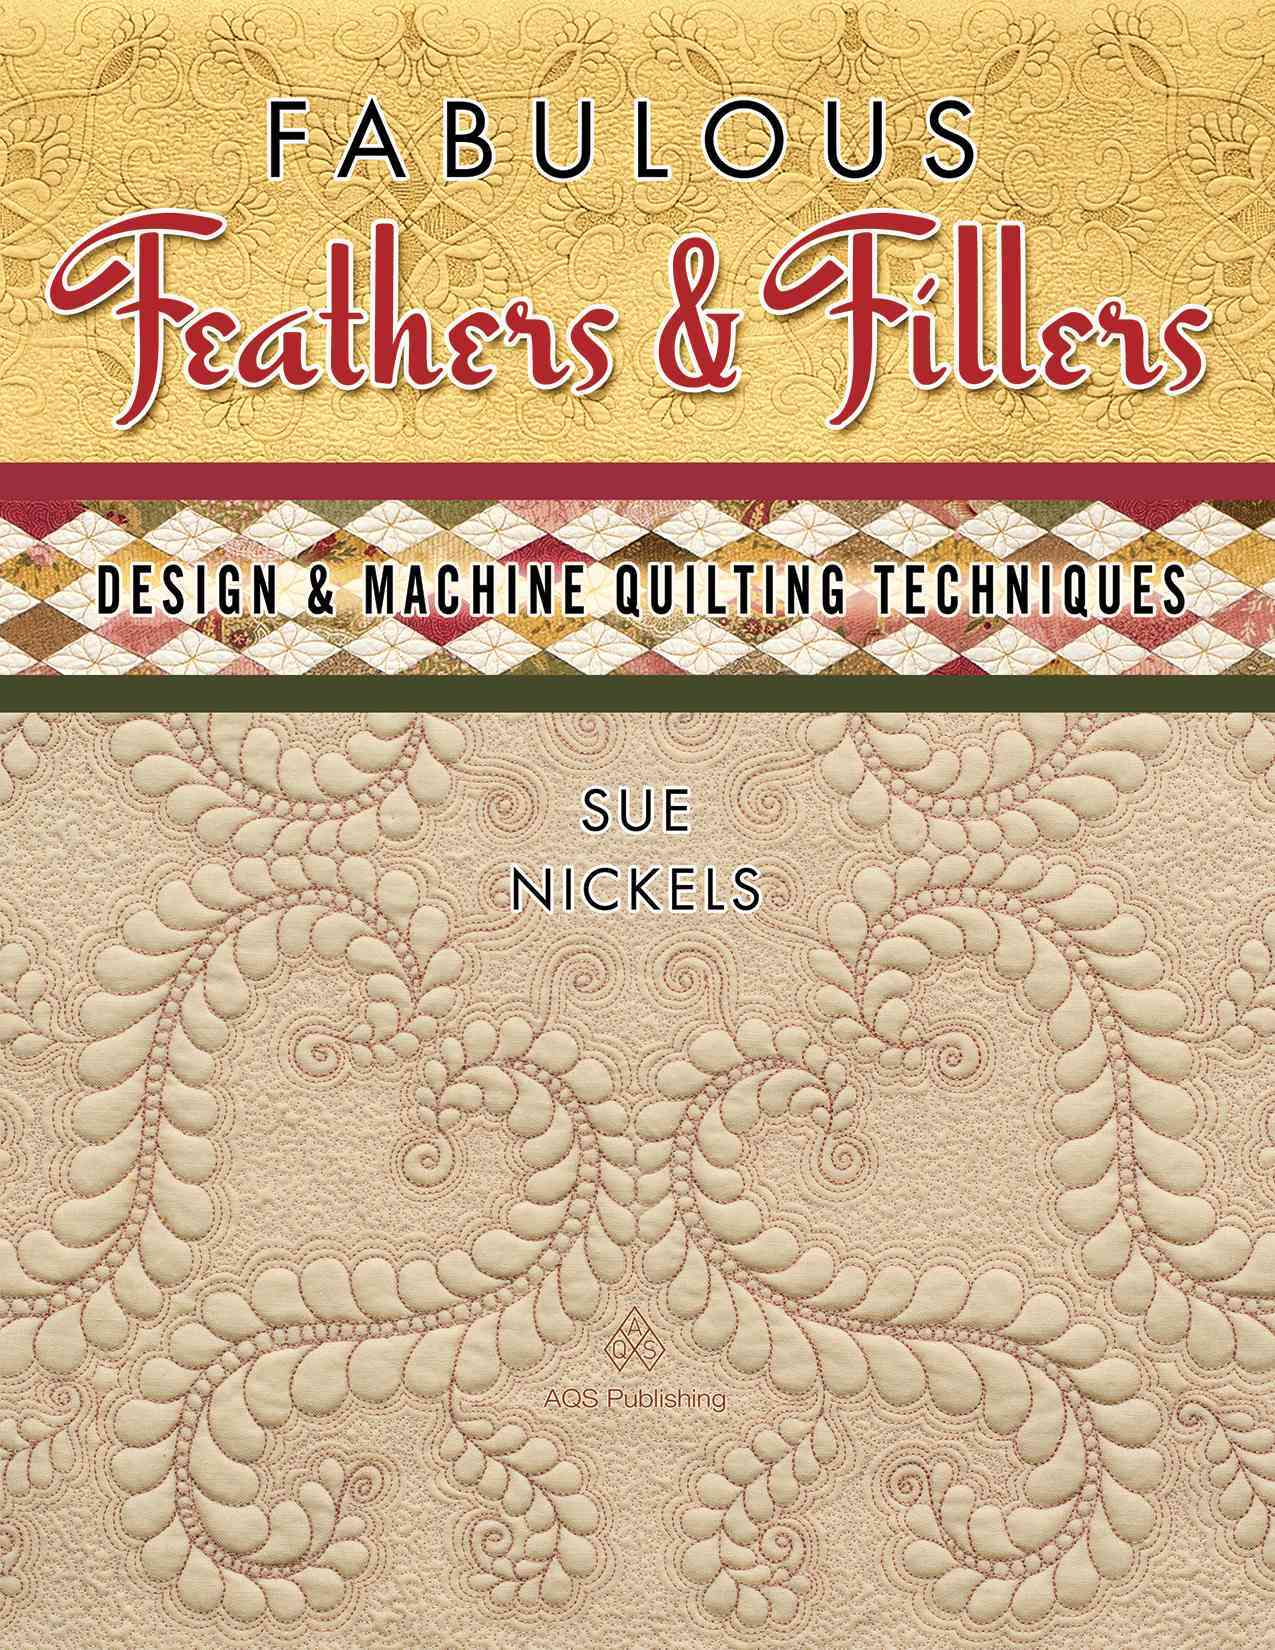 Fabulous Feathers & Fillers: Design & Machine Quilting Techniques (Paperback)